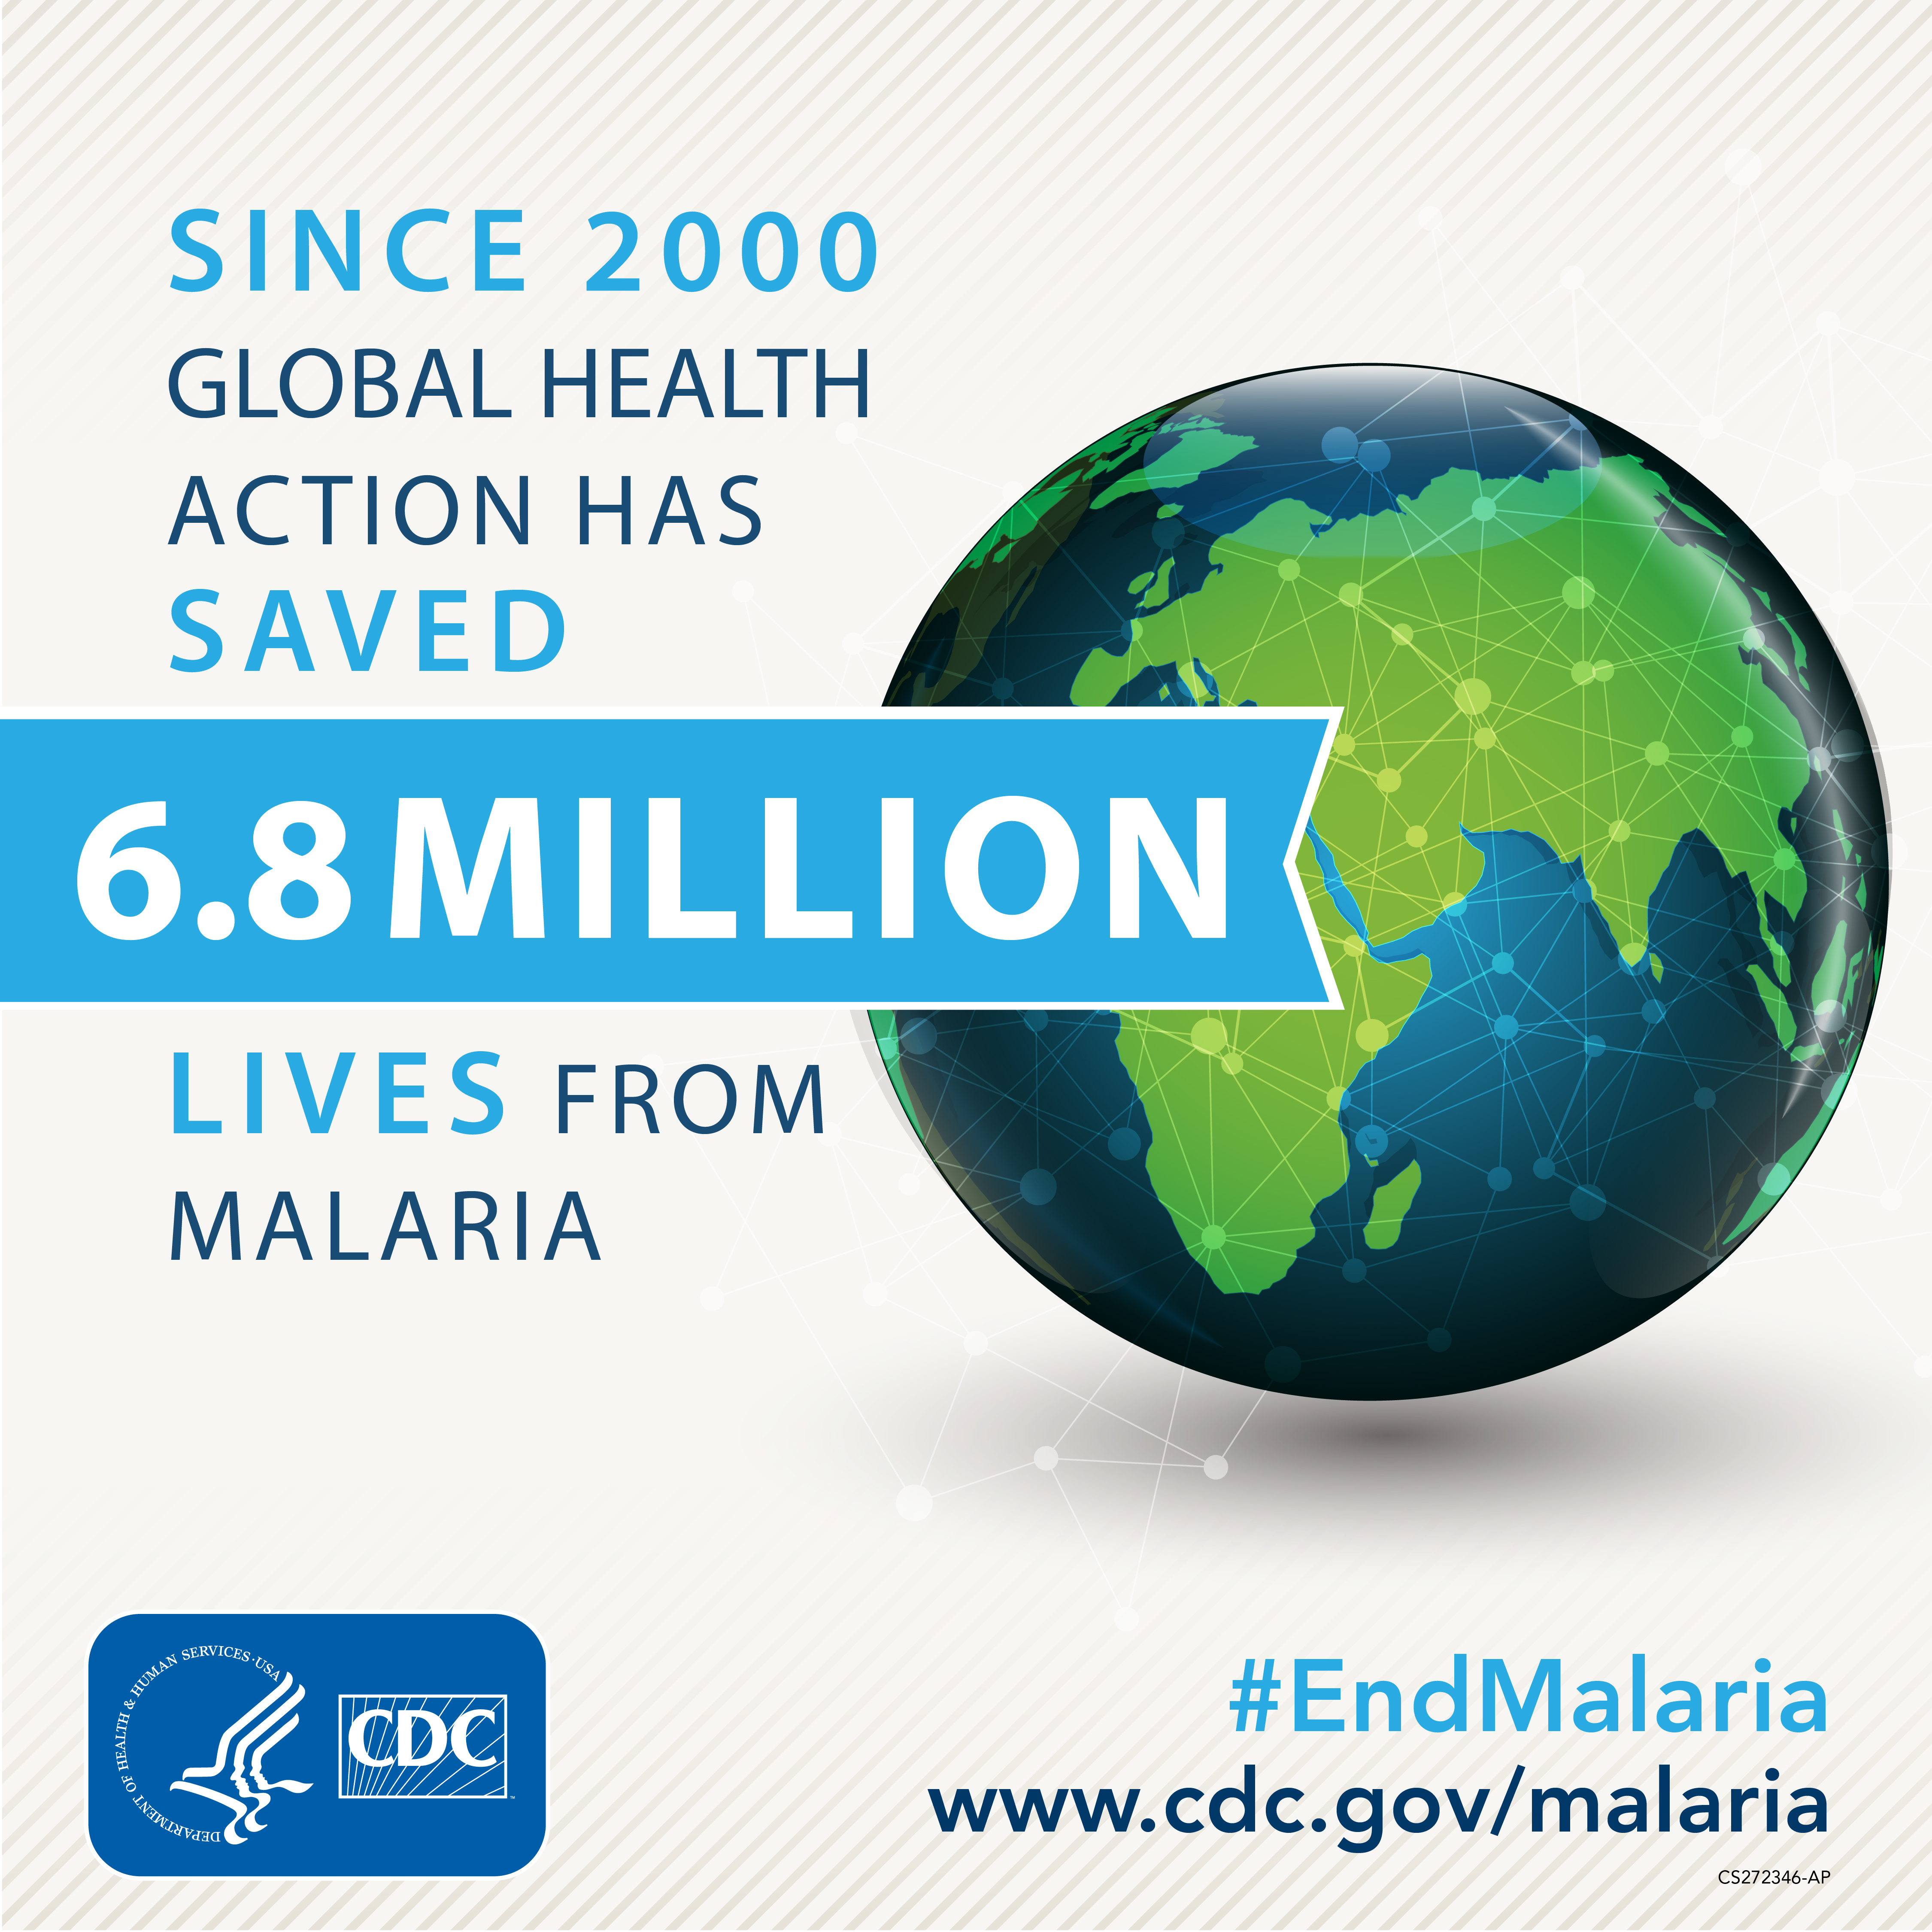 Since 2000 global health action has saved 6.8 million lives from malaria